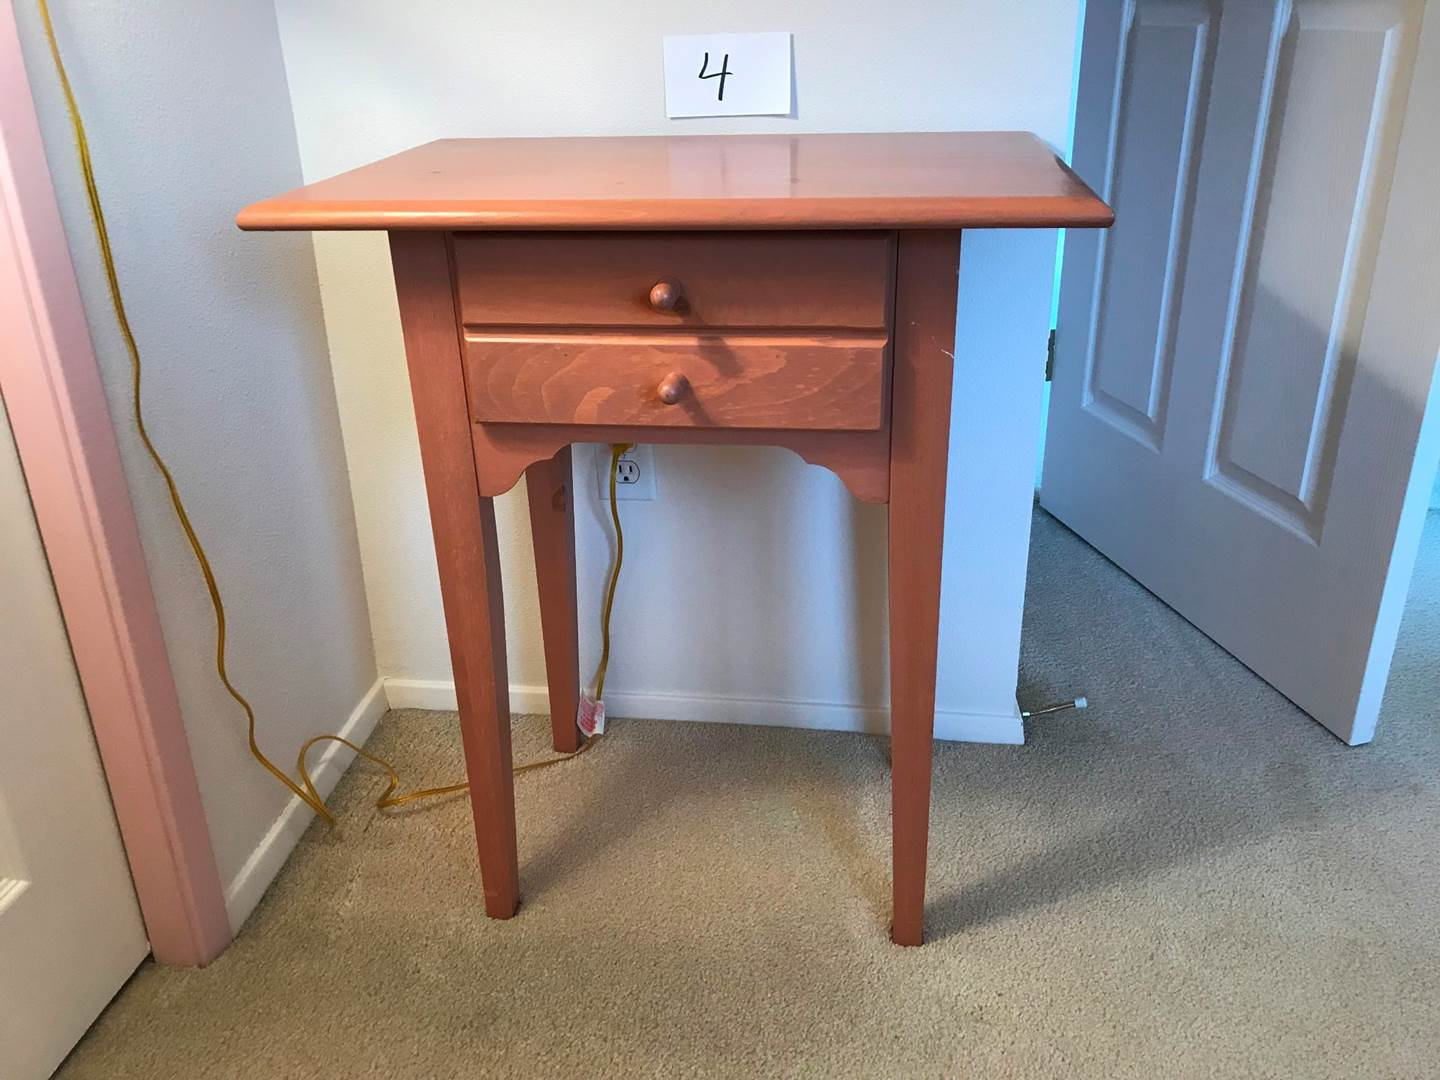 Lot # 4 - Yield House side table, 25x16.5x38hi (main image)